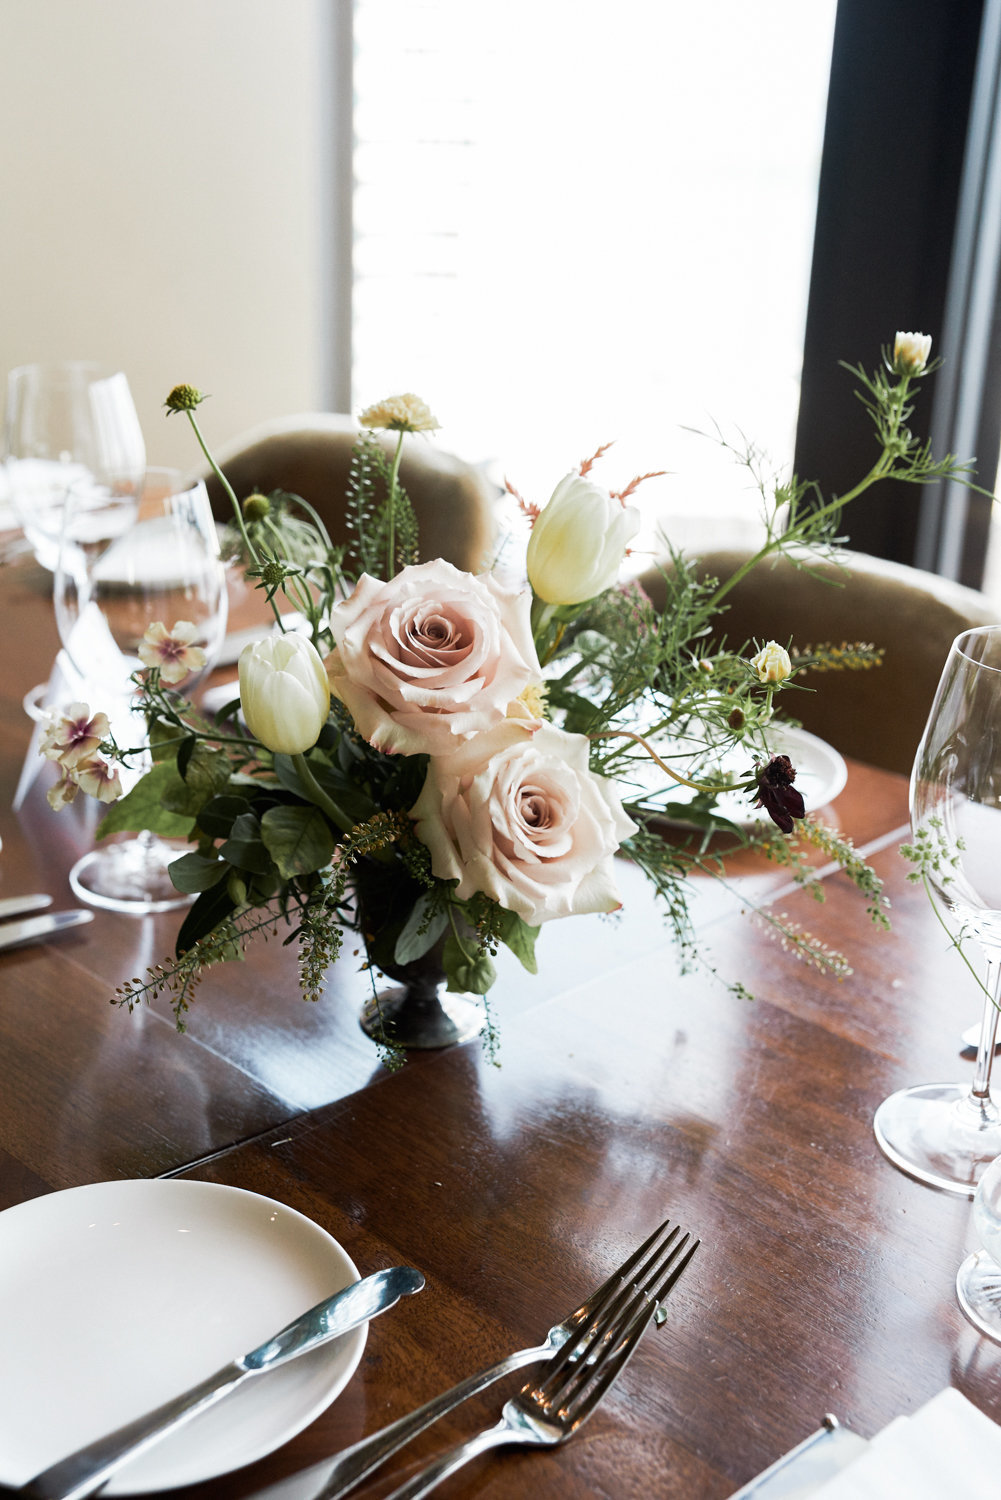 Soft pink rose centrepieces by Patchouli florist in Toronto